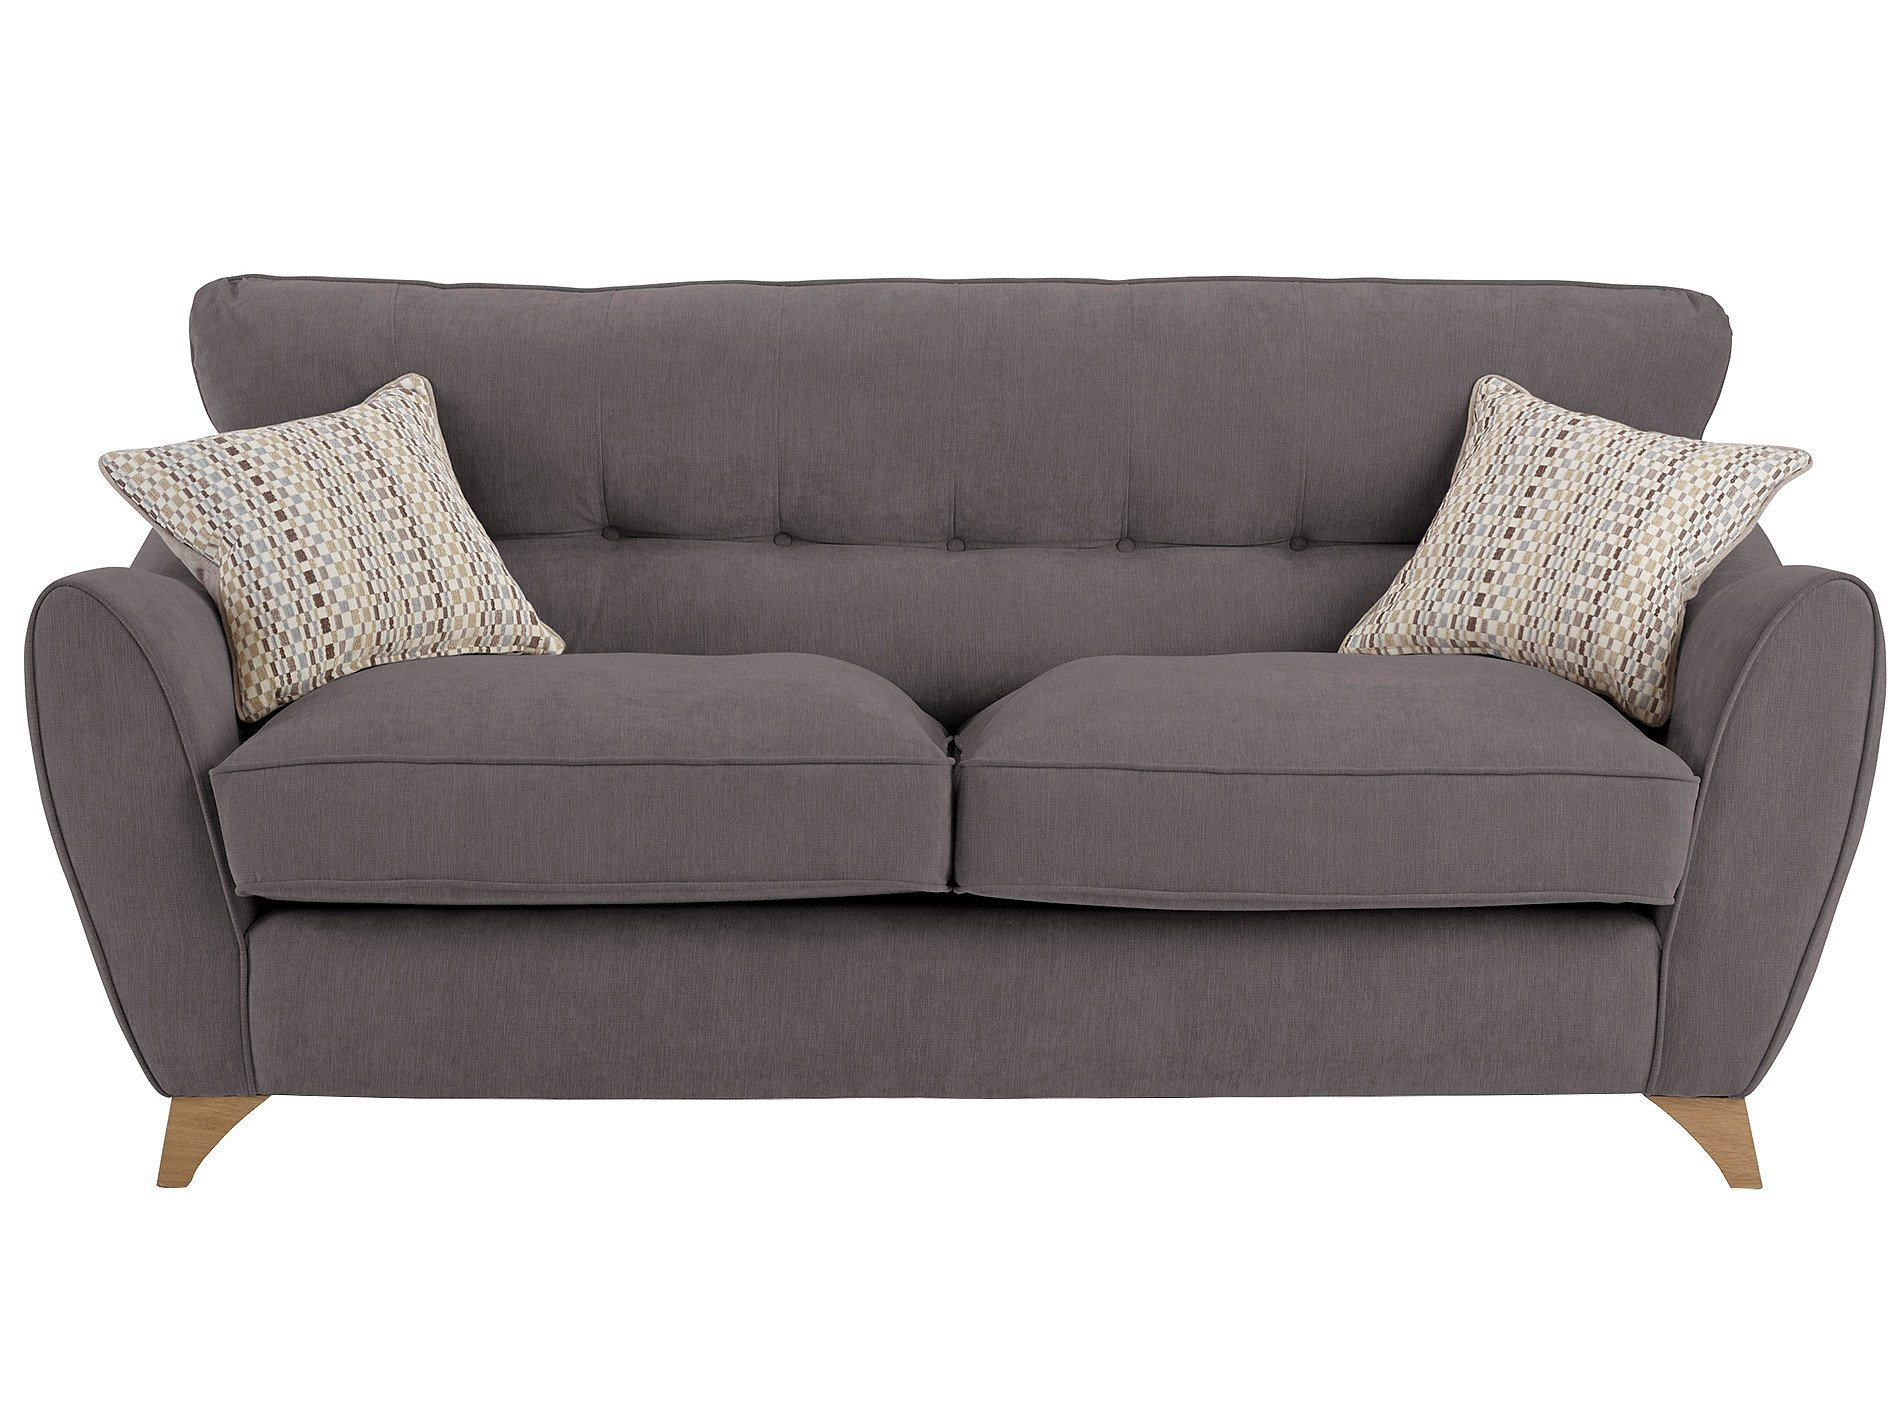 Sofas On Finance No Deposit Uk picture on Sofas On Finance No Deposit Uk12227.html with Sofas On Finance No Deposit Uk, sofa 7b3ab9e2d4fa8d1d199173a29383b61e